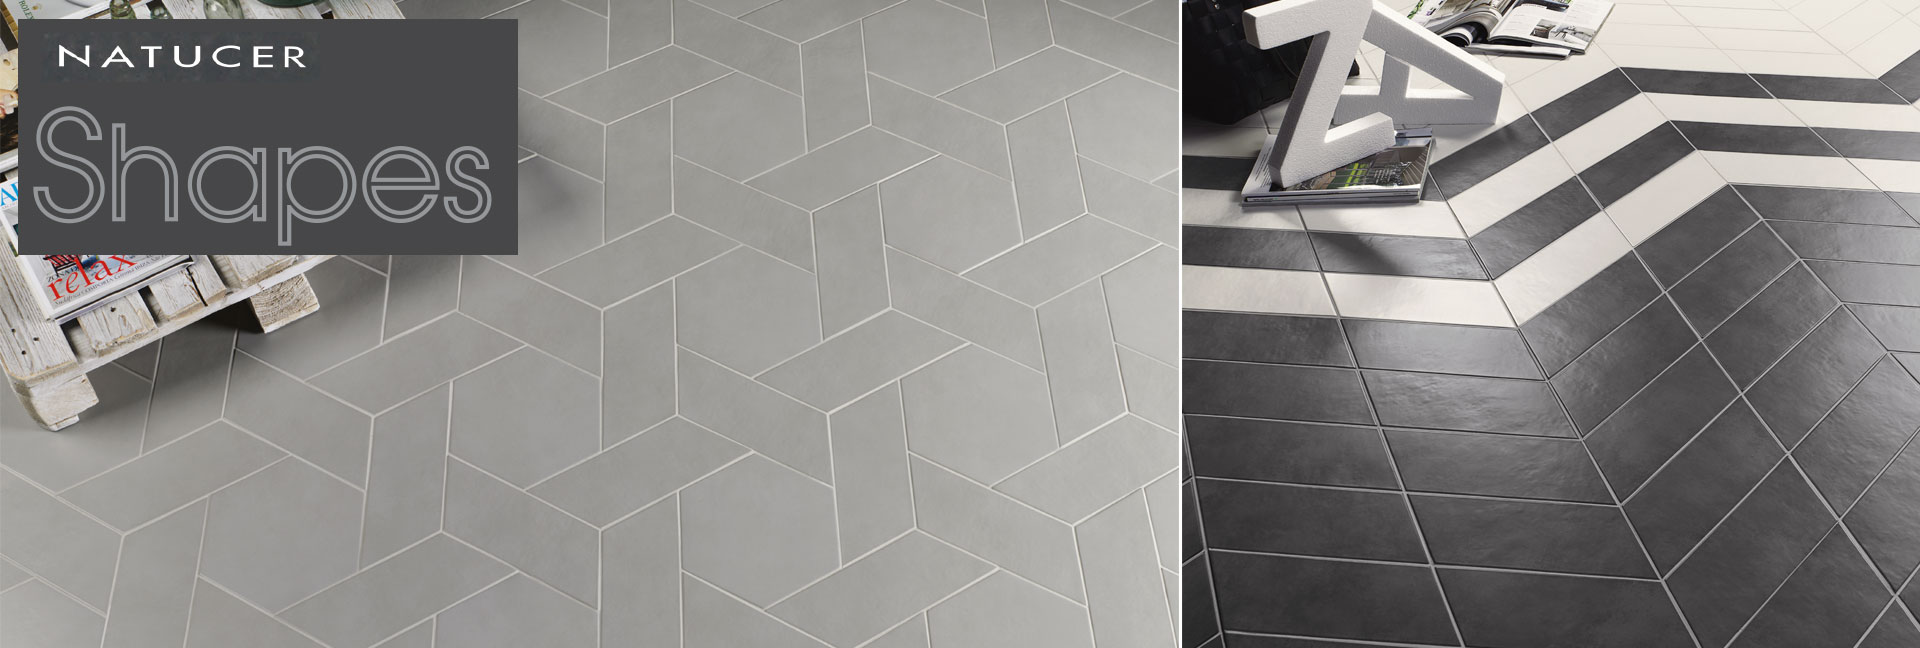 Natucer Shapes Porcelain Tile